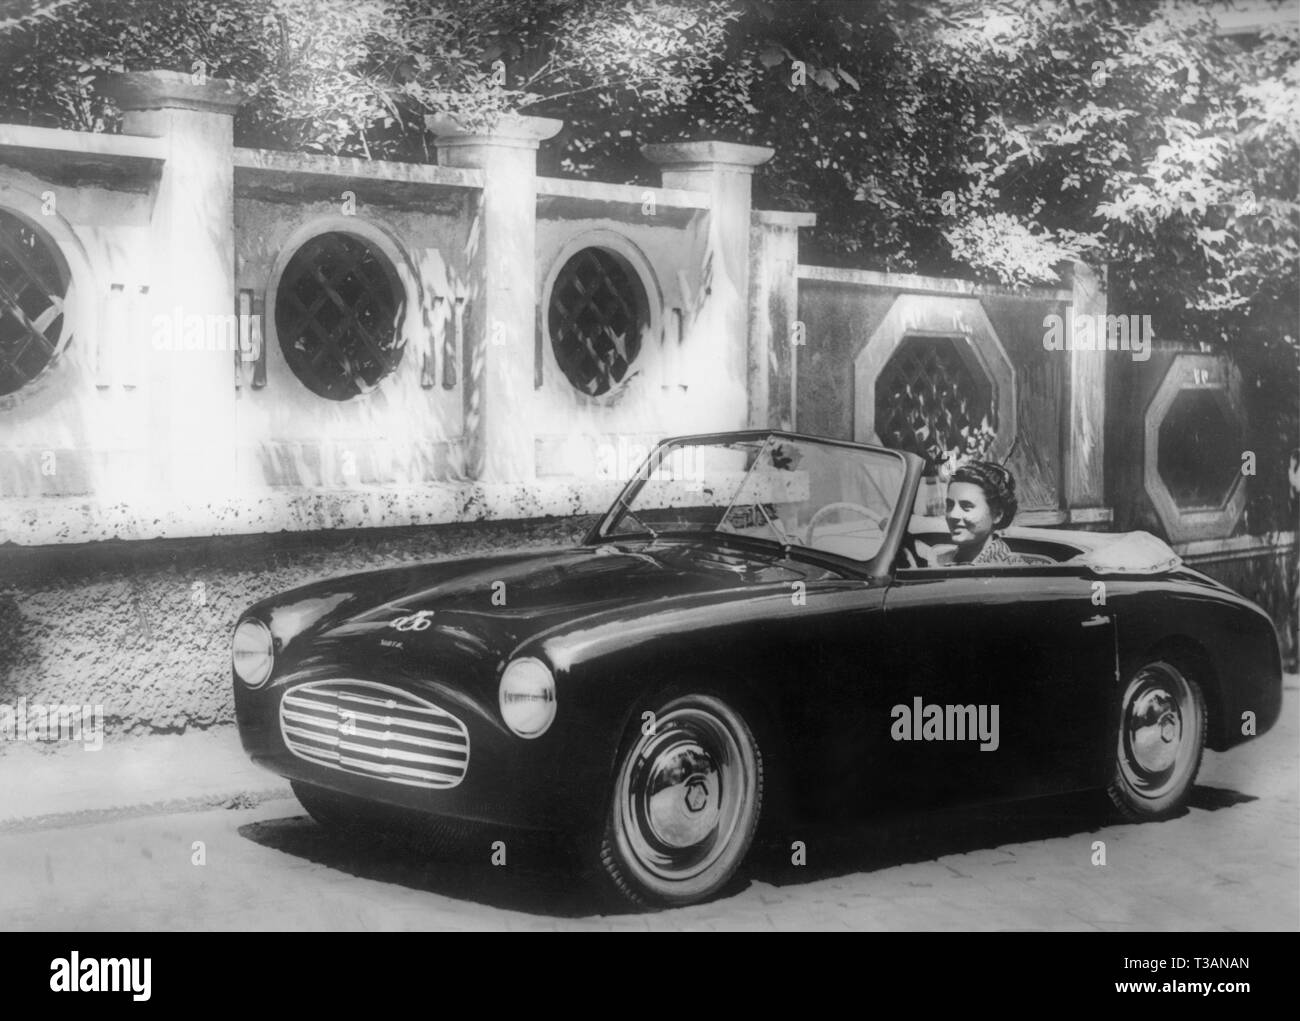 luxury car, 1949 - Stock Image